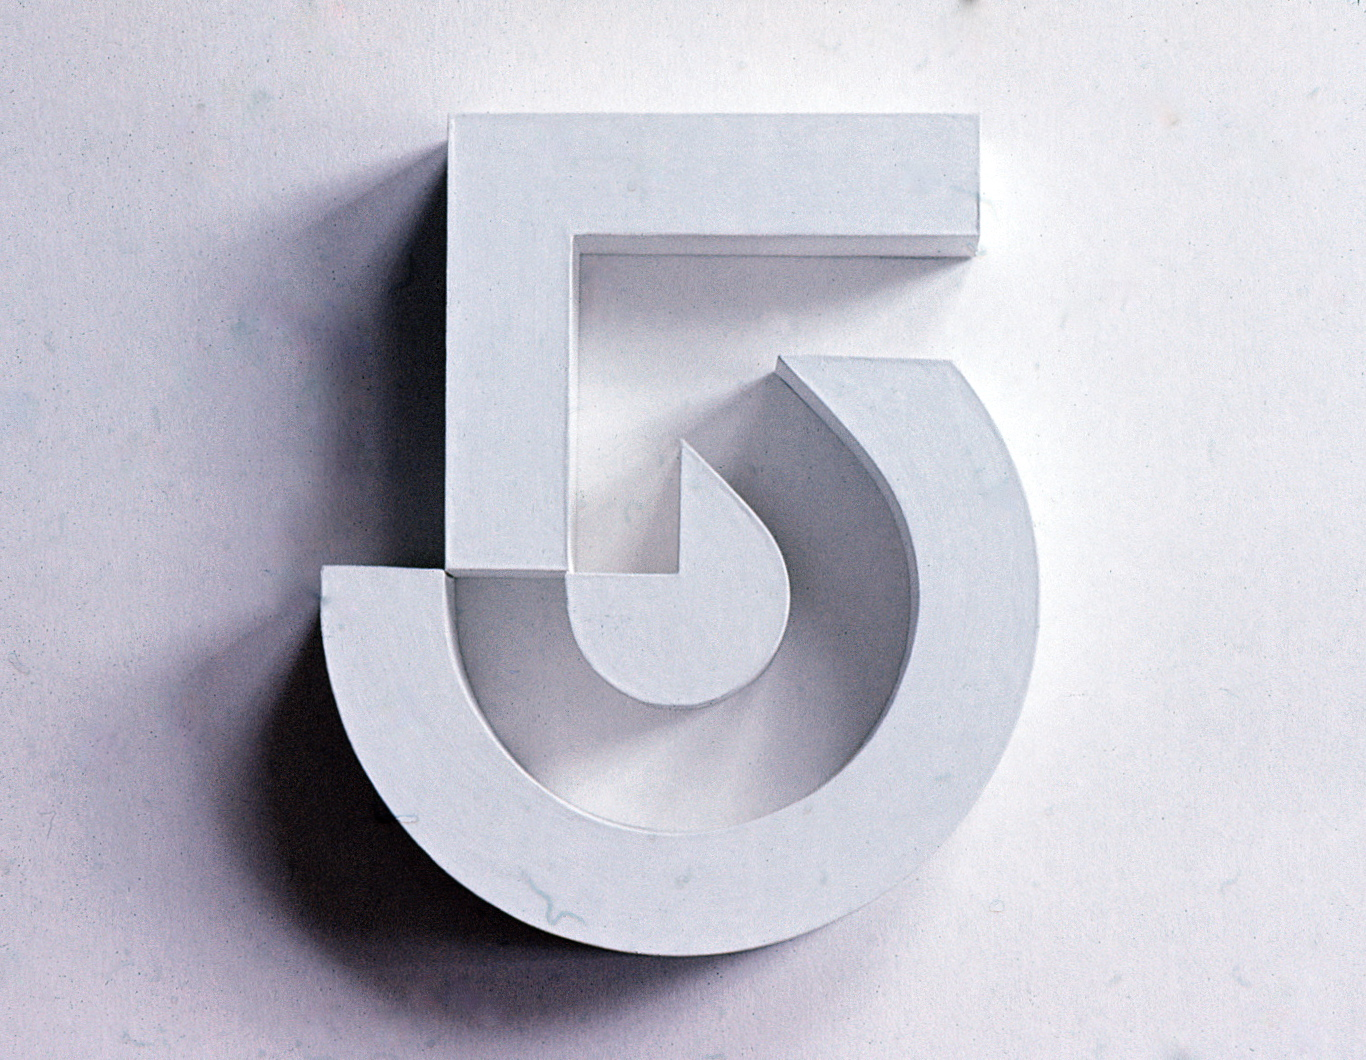 Channel 5 logo with shadows